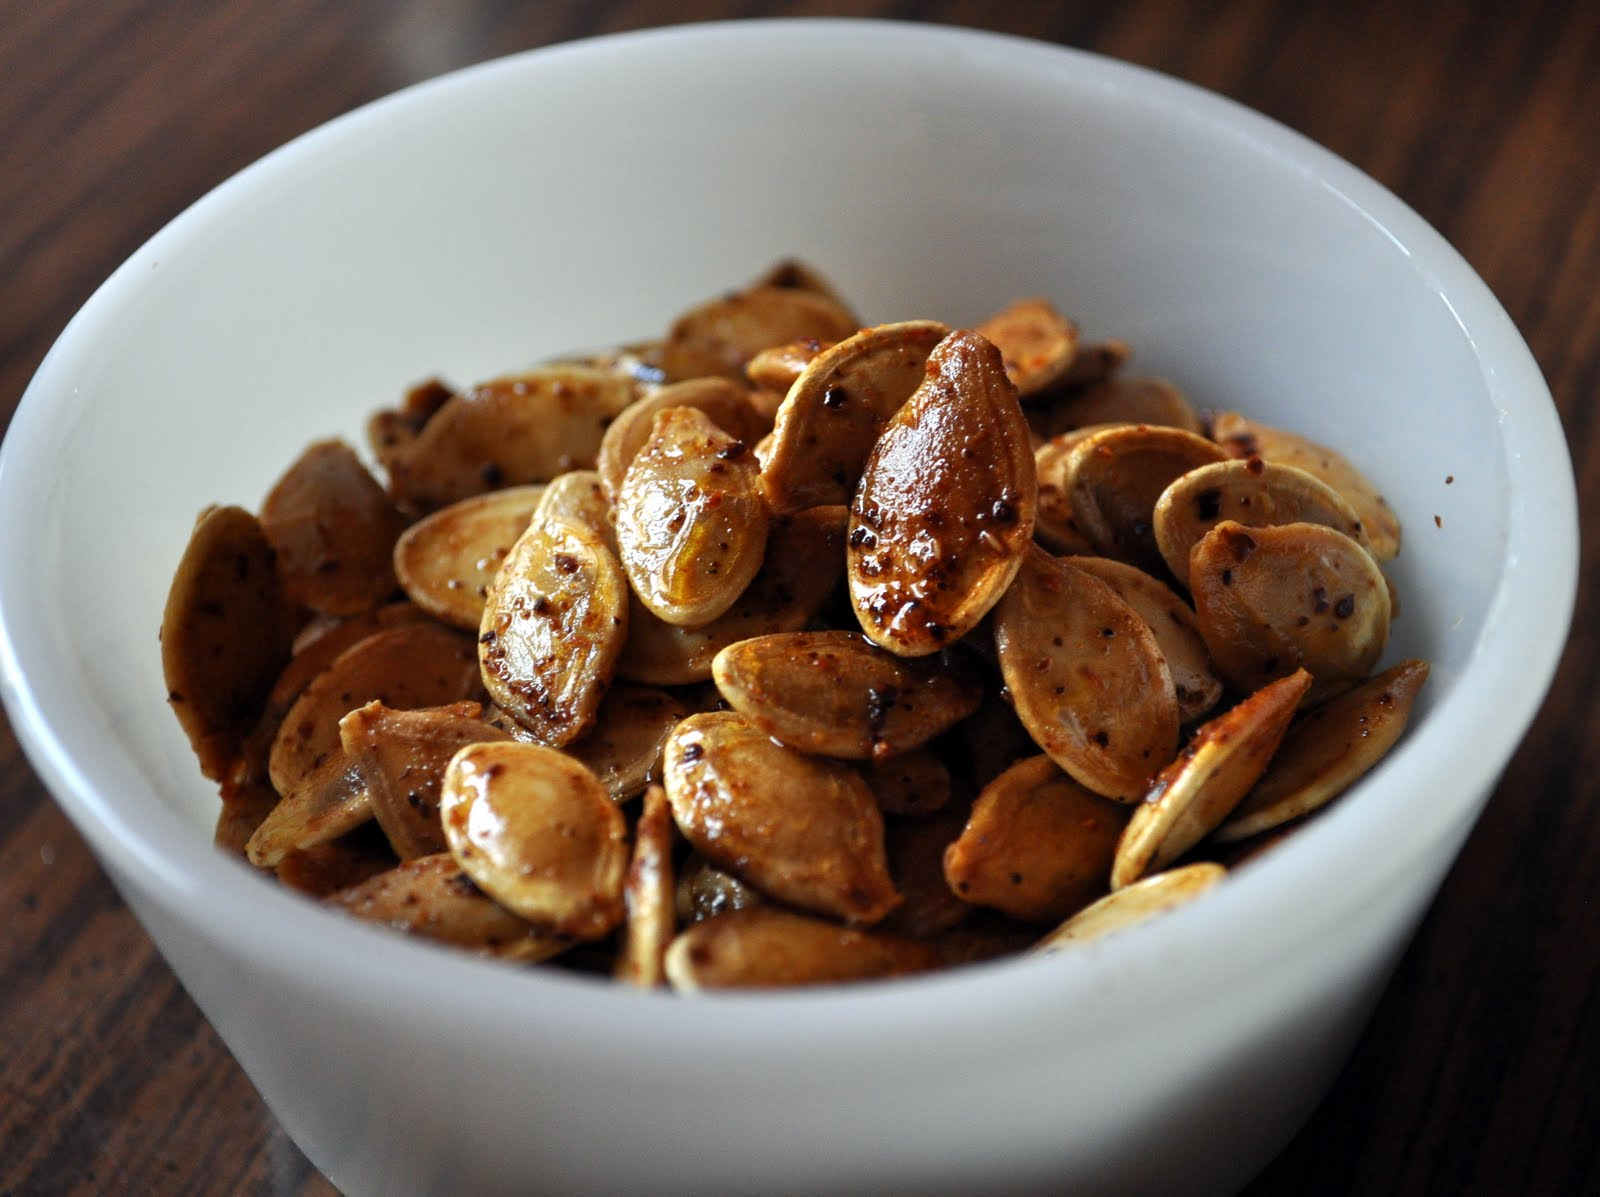 Our Italian Kitchen: Cinnamon Sugar and Spicy Pumpkin Seeds